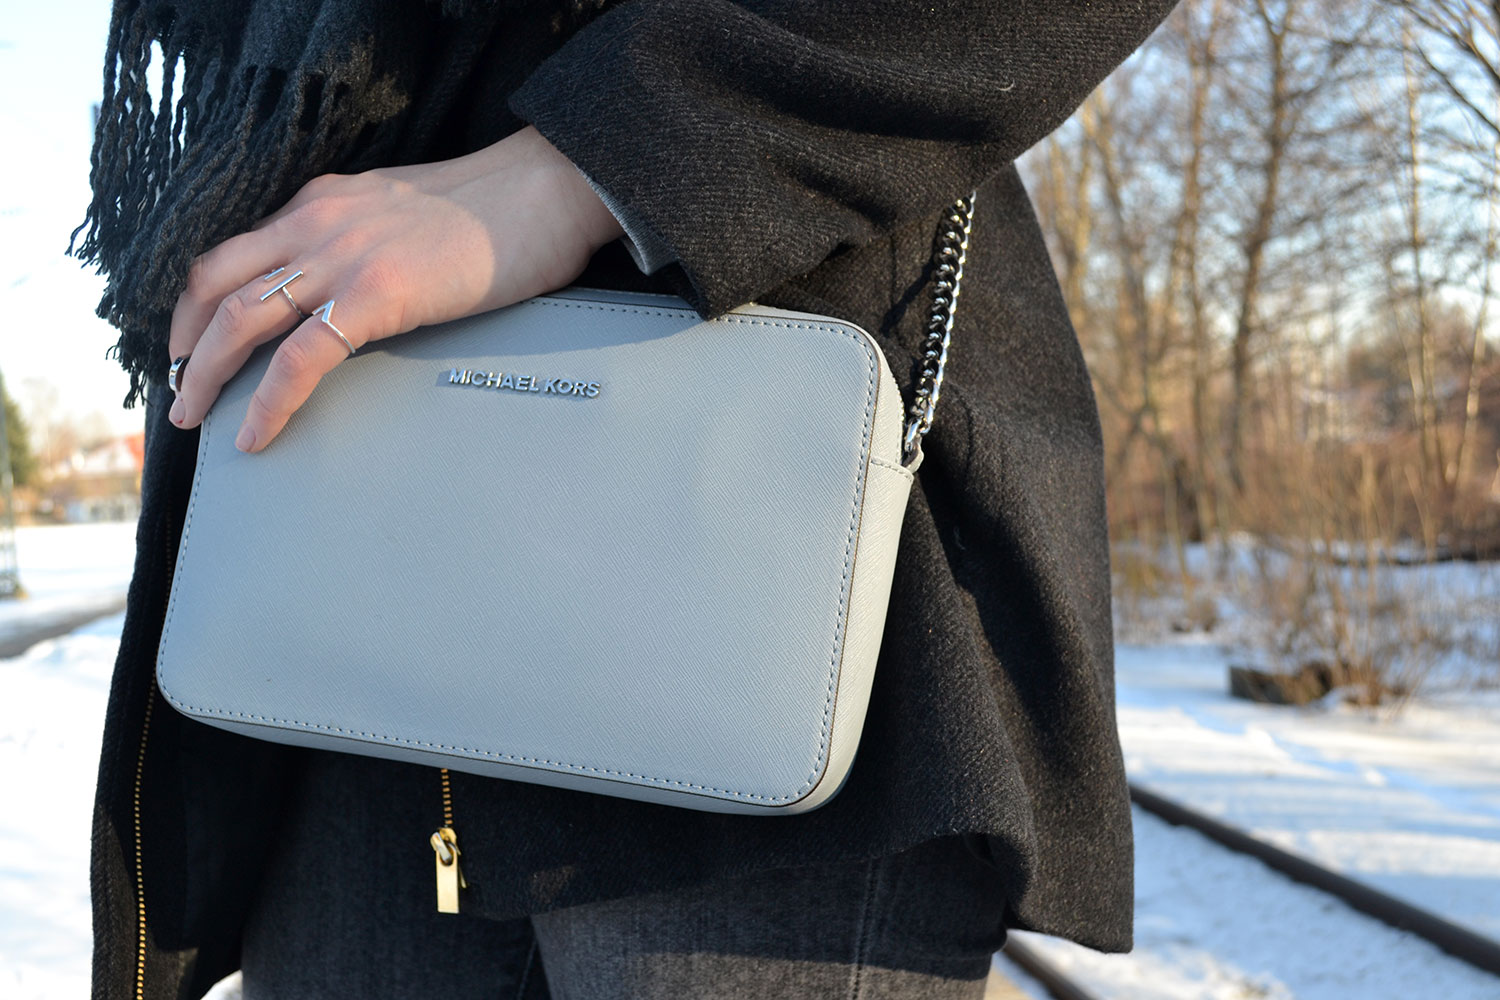 Outfit: All Grey // Michael Kors Crossbody Bag | Munich - Michael Kors Crossbody 1